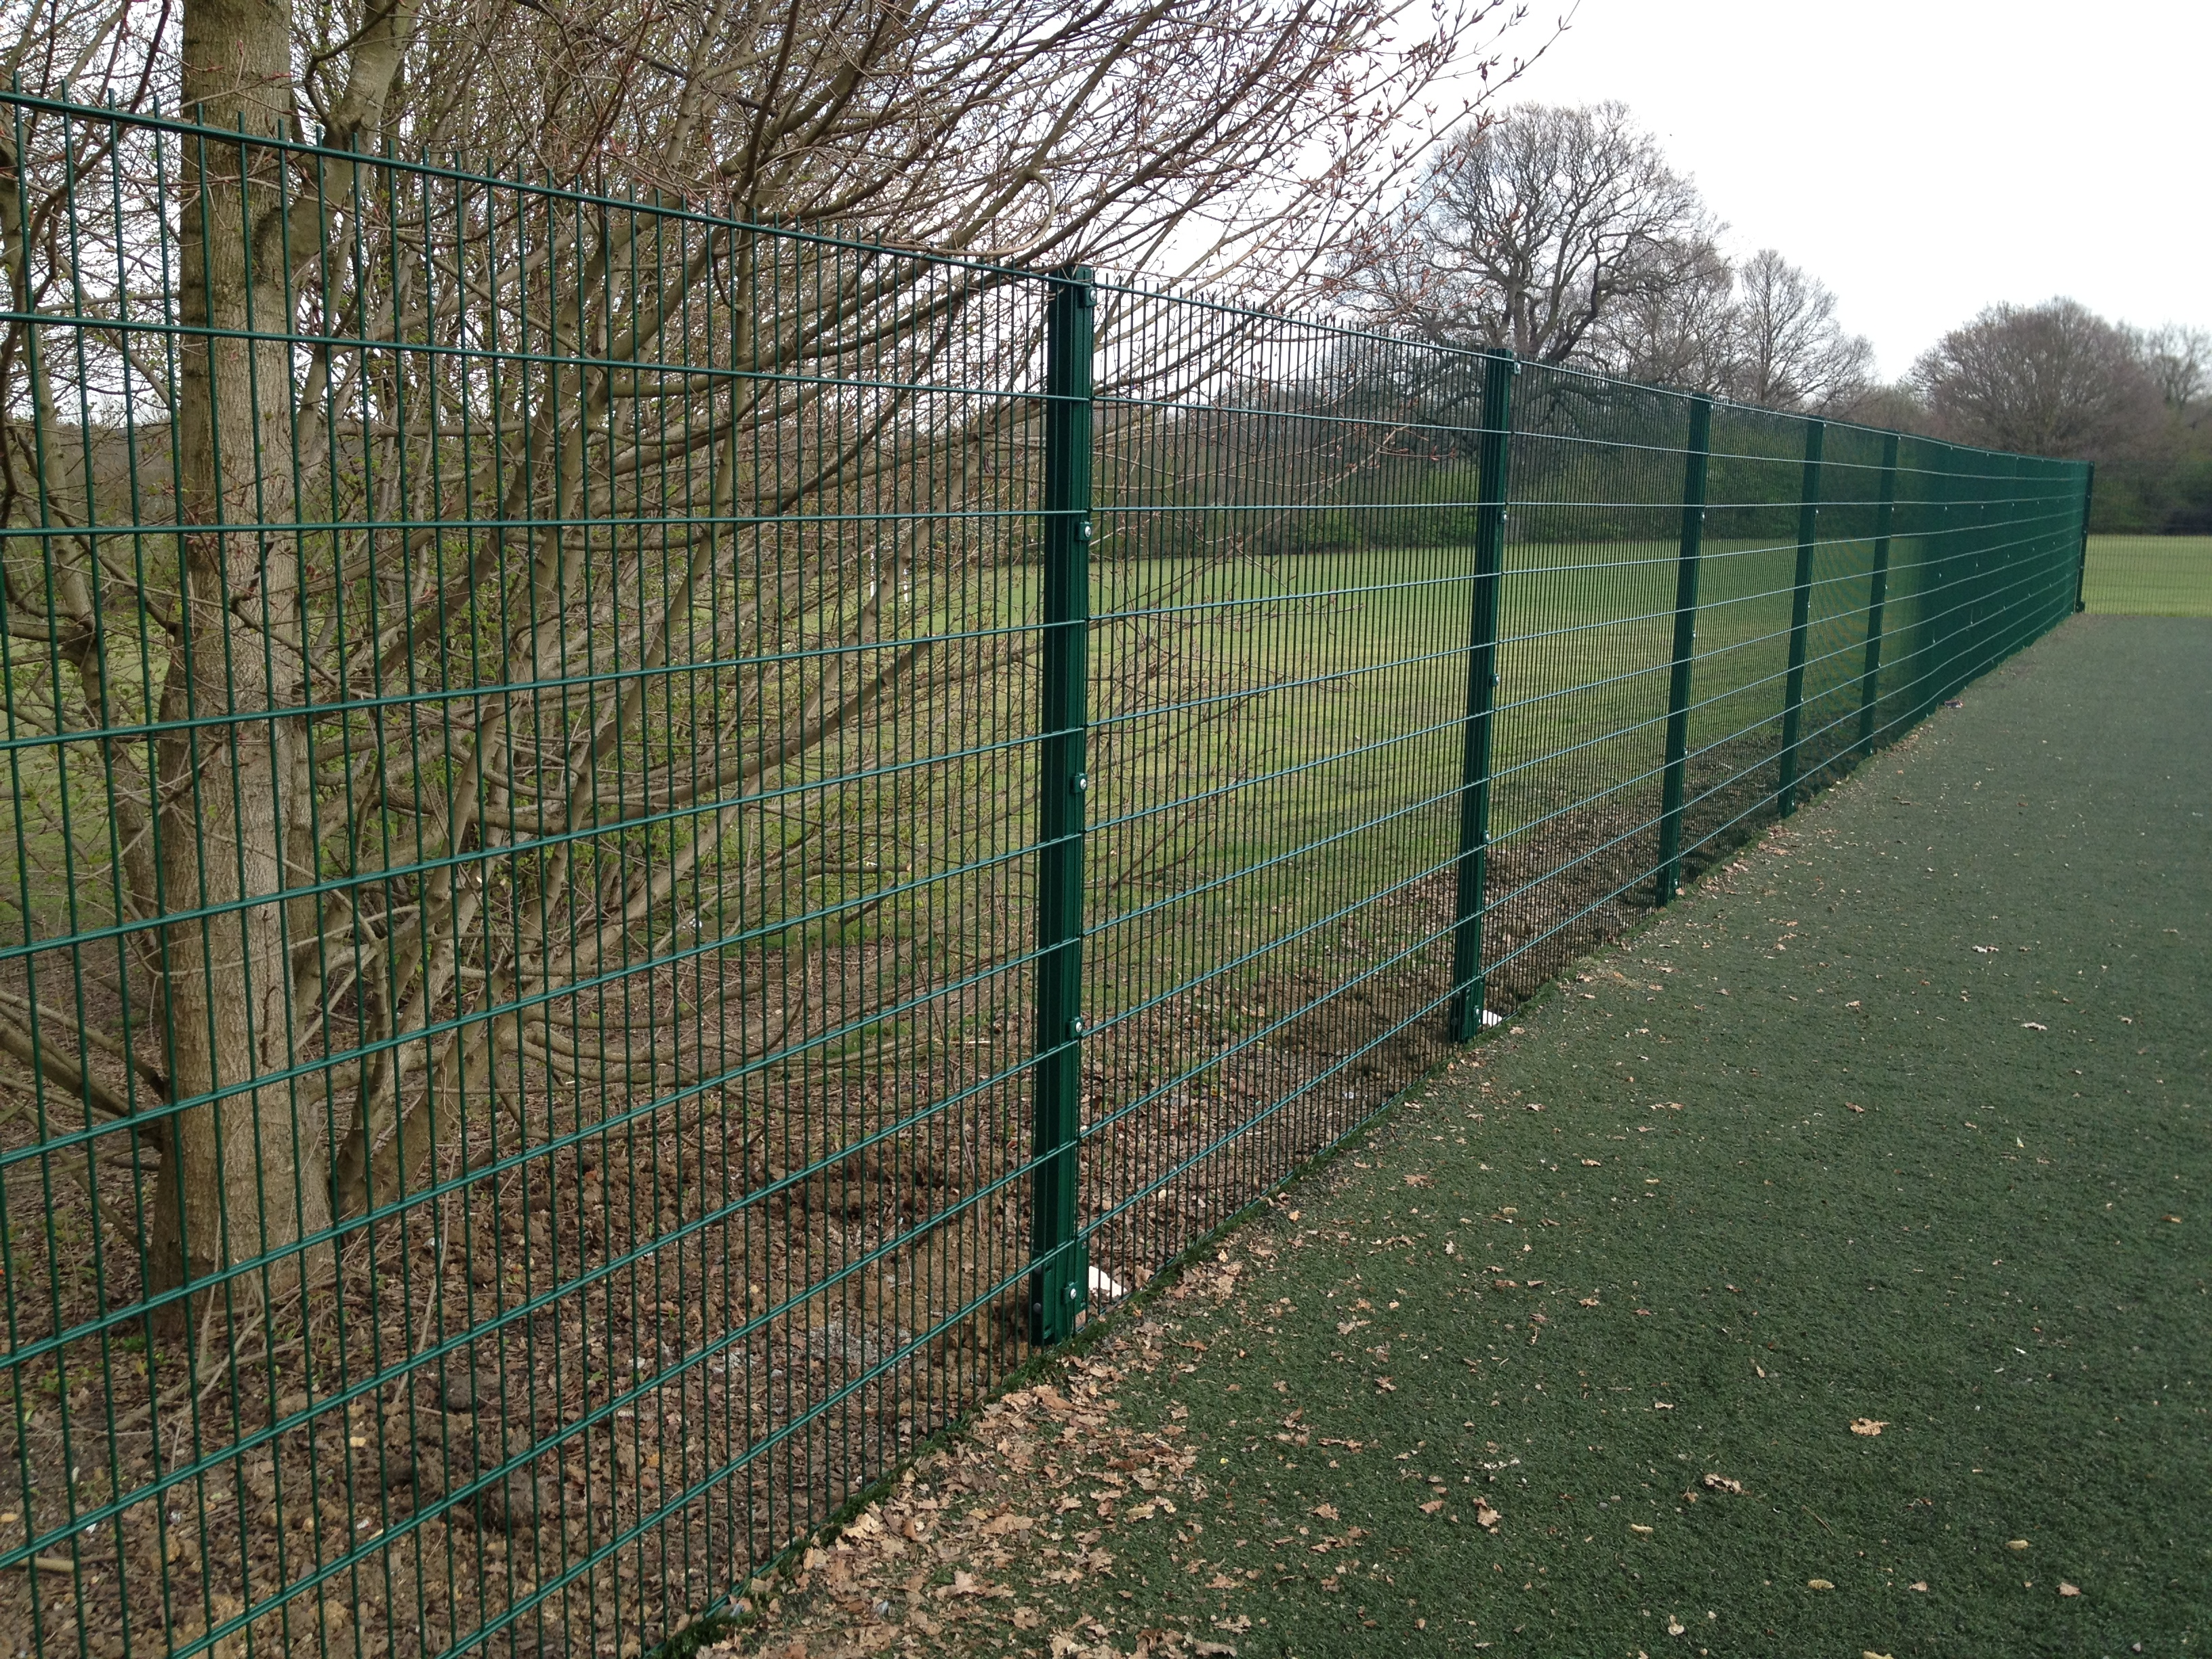 868 Mesh Panel Fencing, Security Fencing Brentwood, Essex, Industrial Fencing